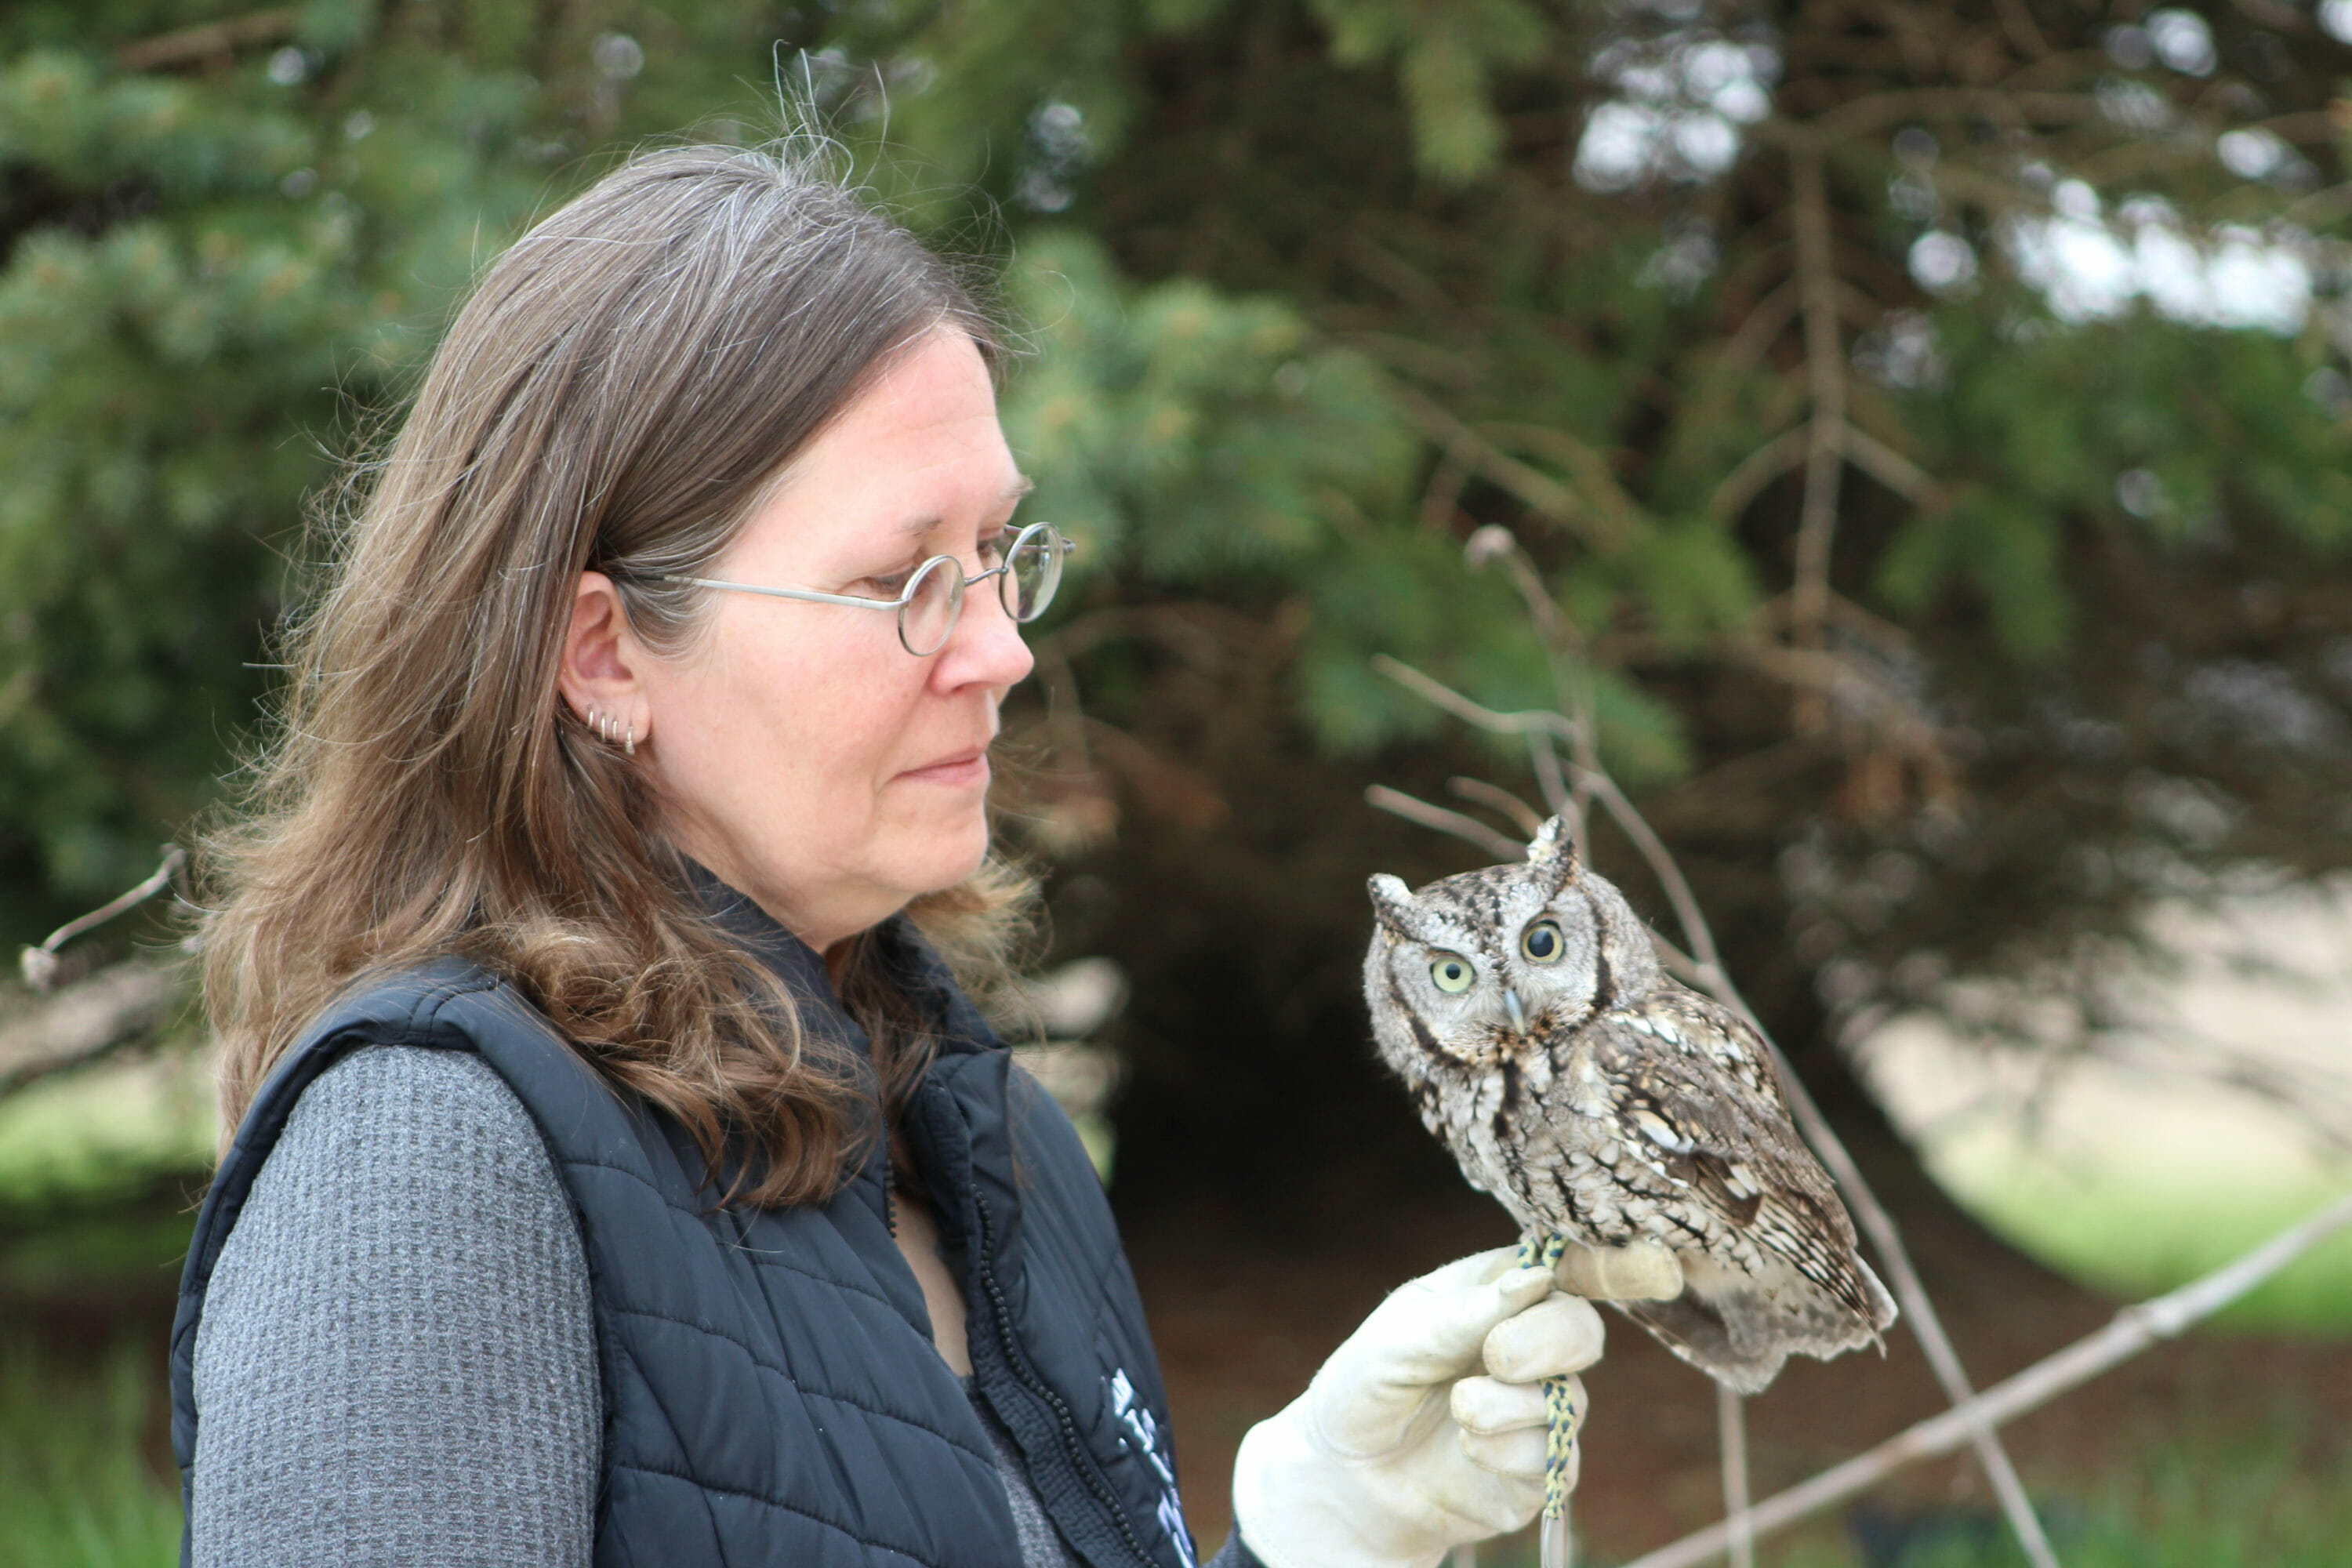 Marsh Haven Instructor with Owl Perched on Hand